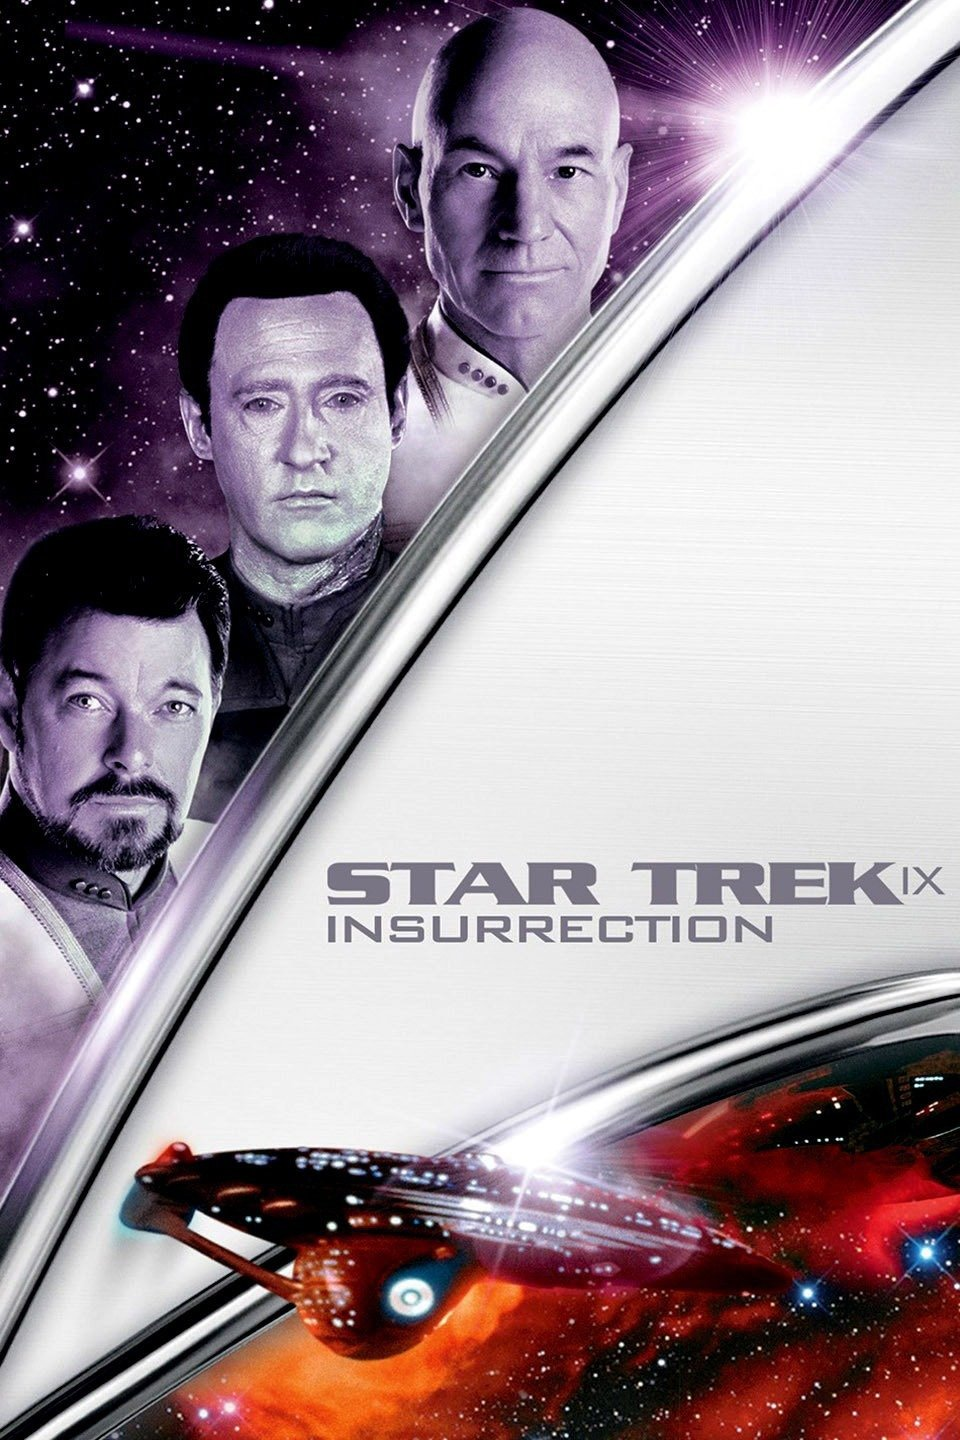 Star Trek: Insurrection-Star Trek: Insurrection